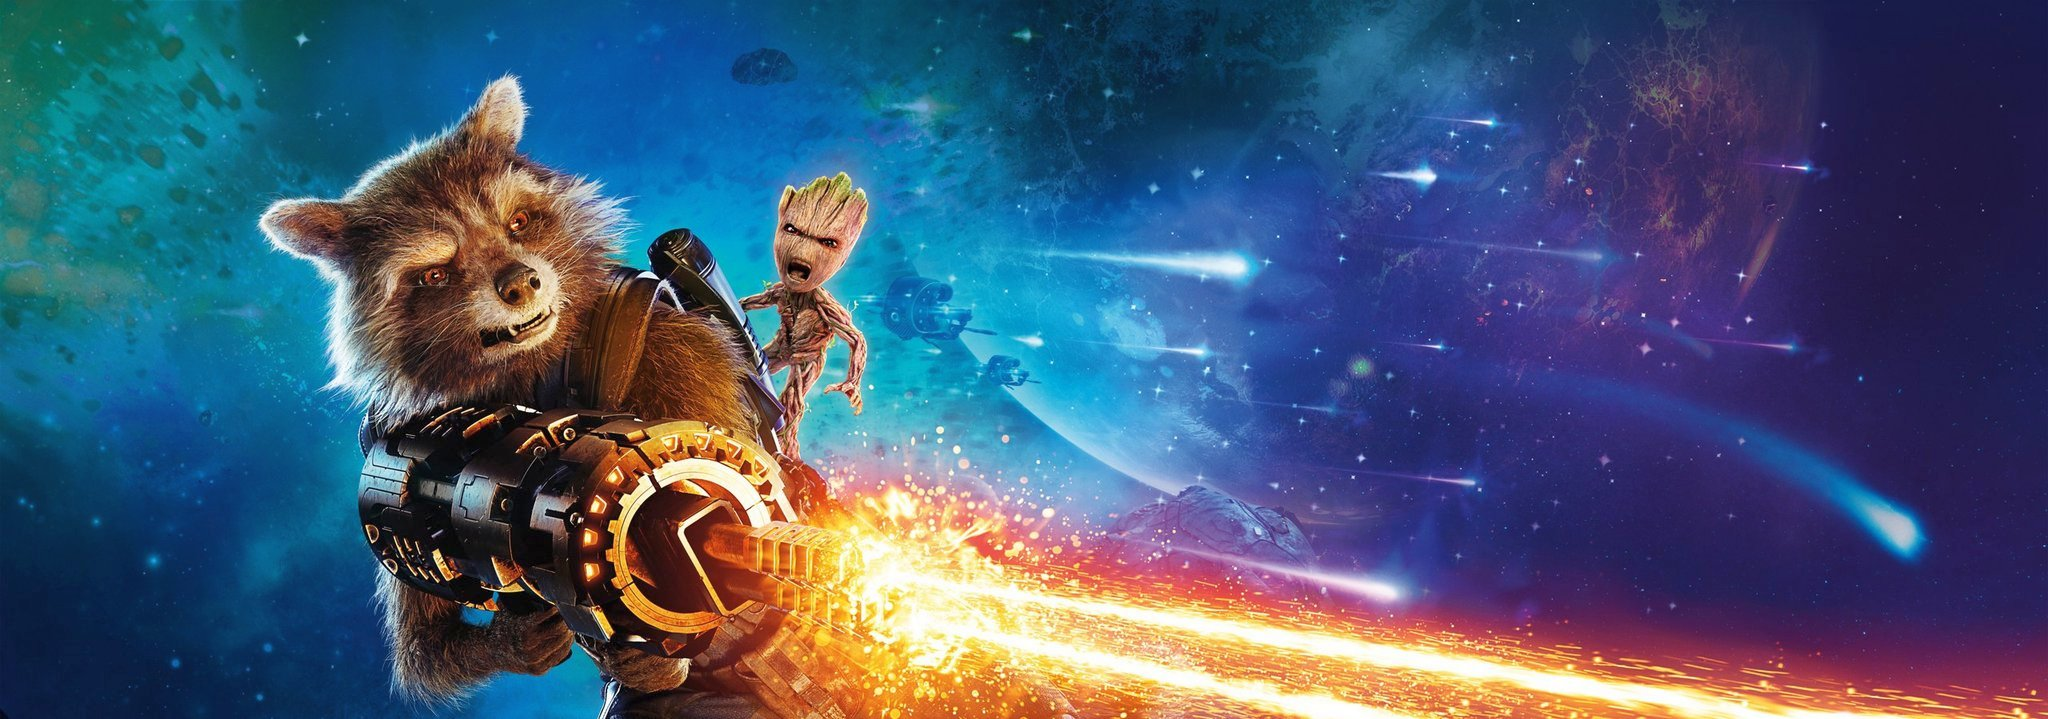 Guardians of the Galaxy Vol. 2 Banners